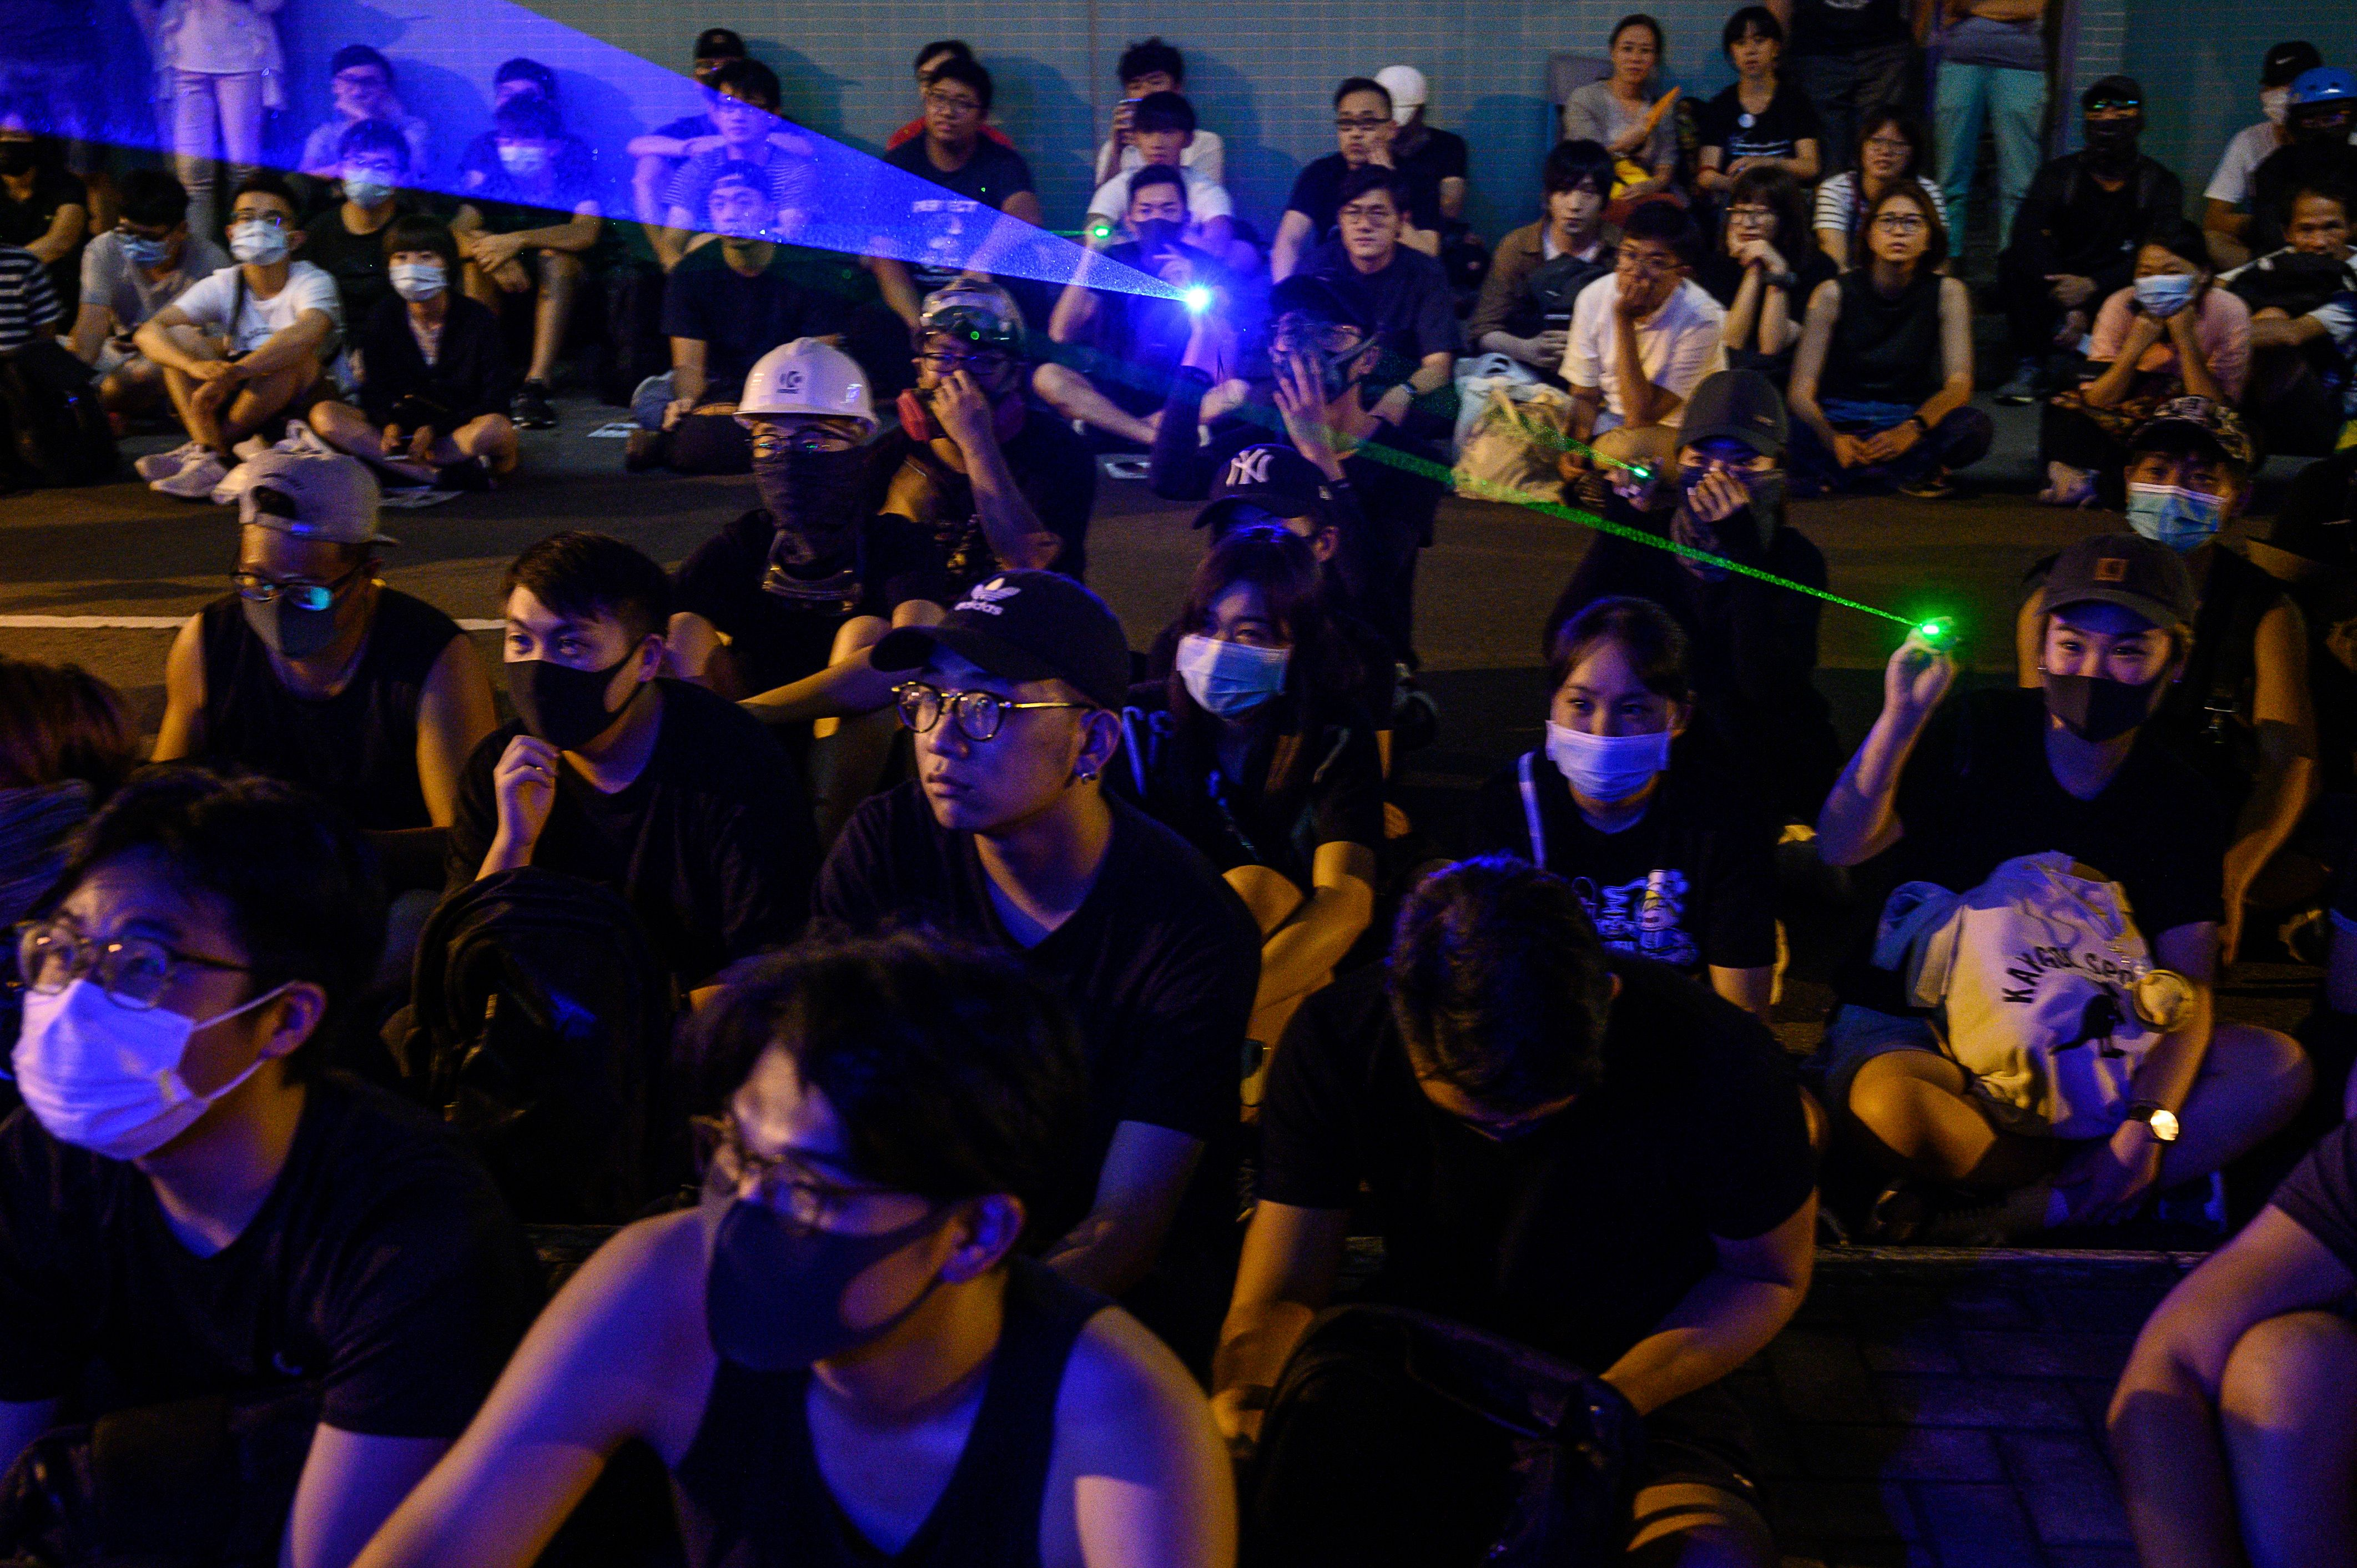 How China used Facebook, Twitter, and YouTube to spread disinformation about the Hong Kong protests